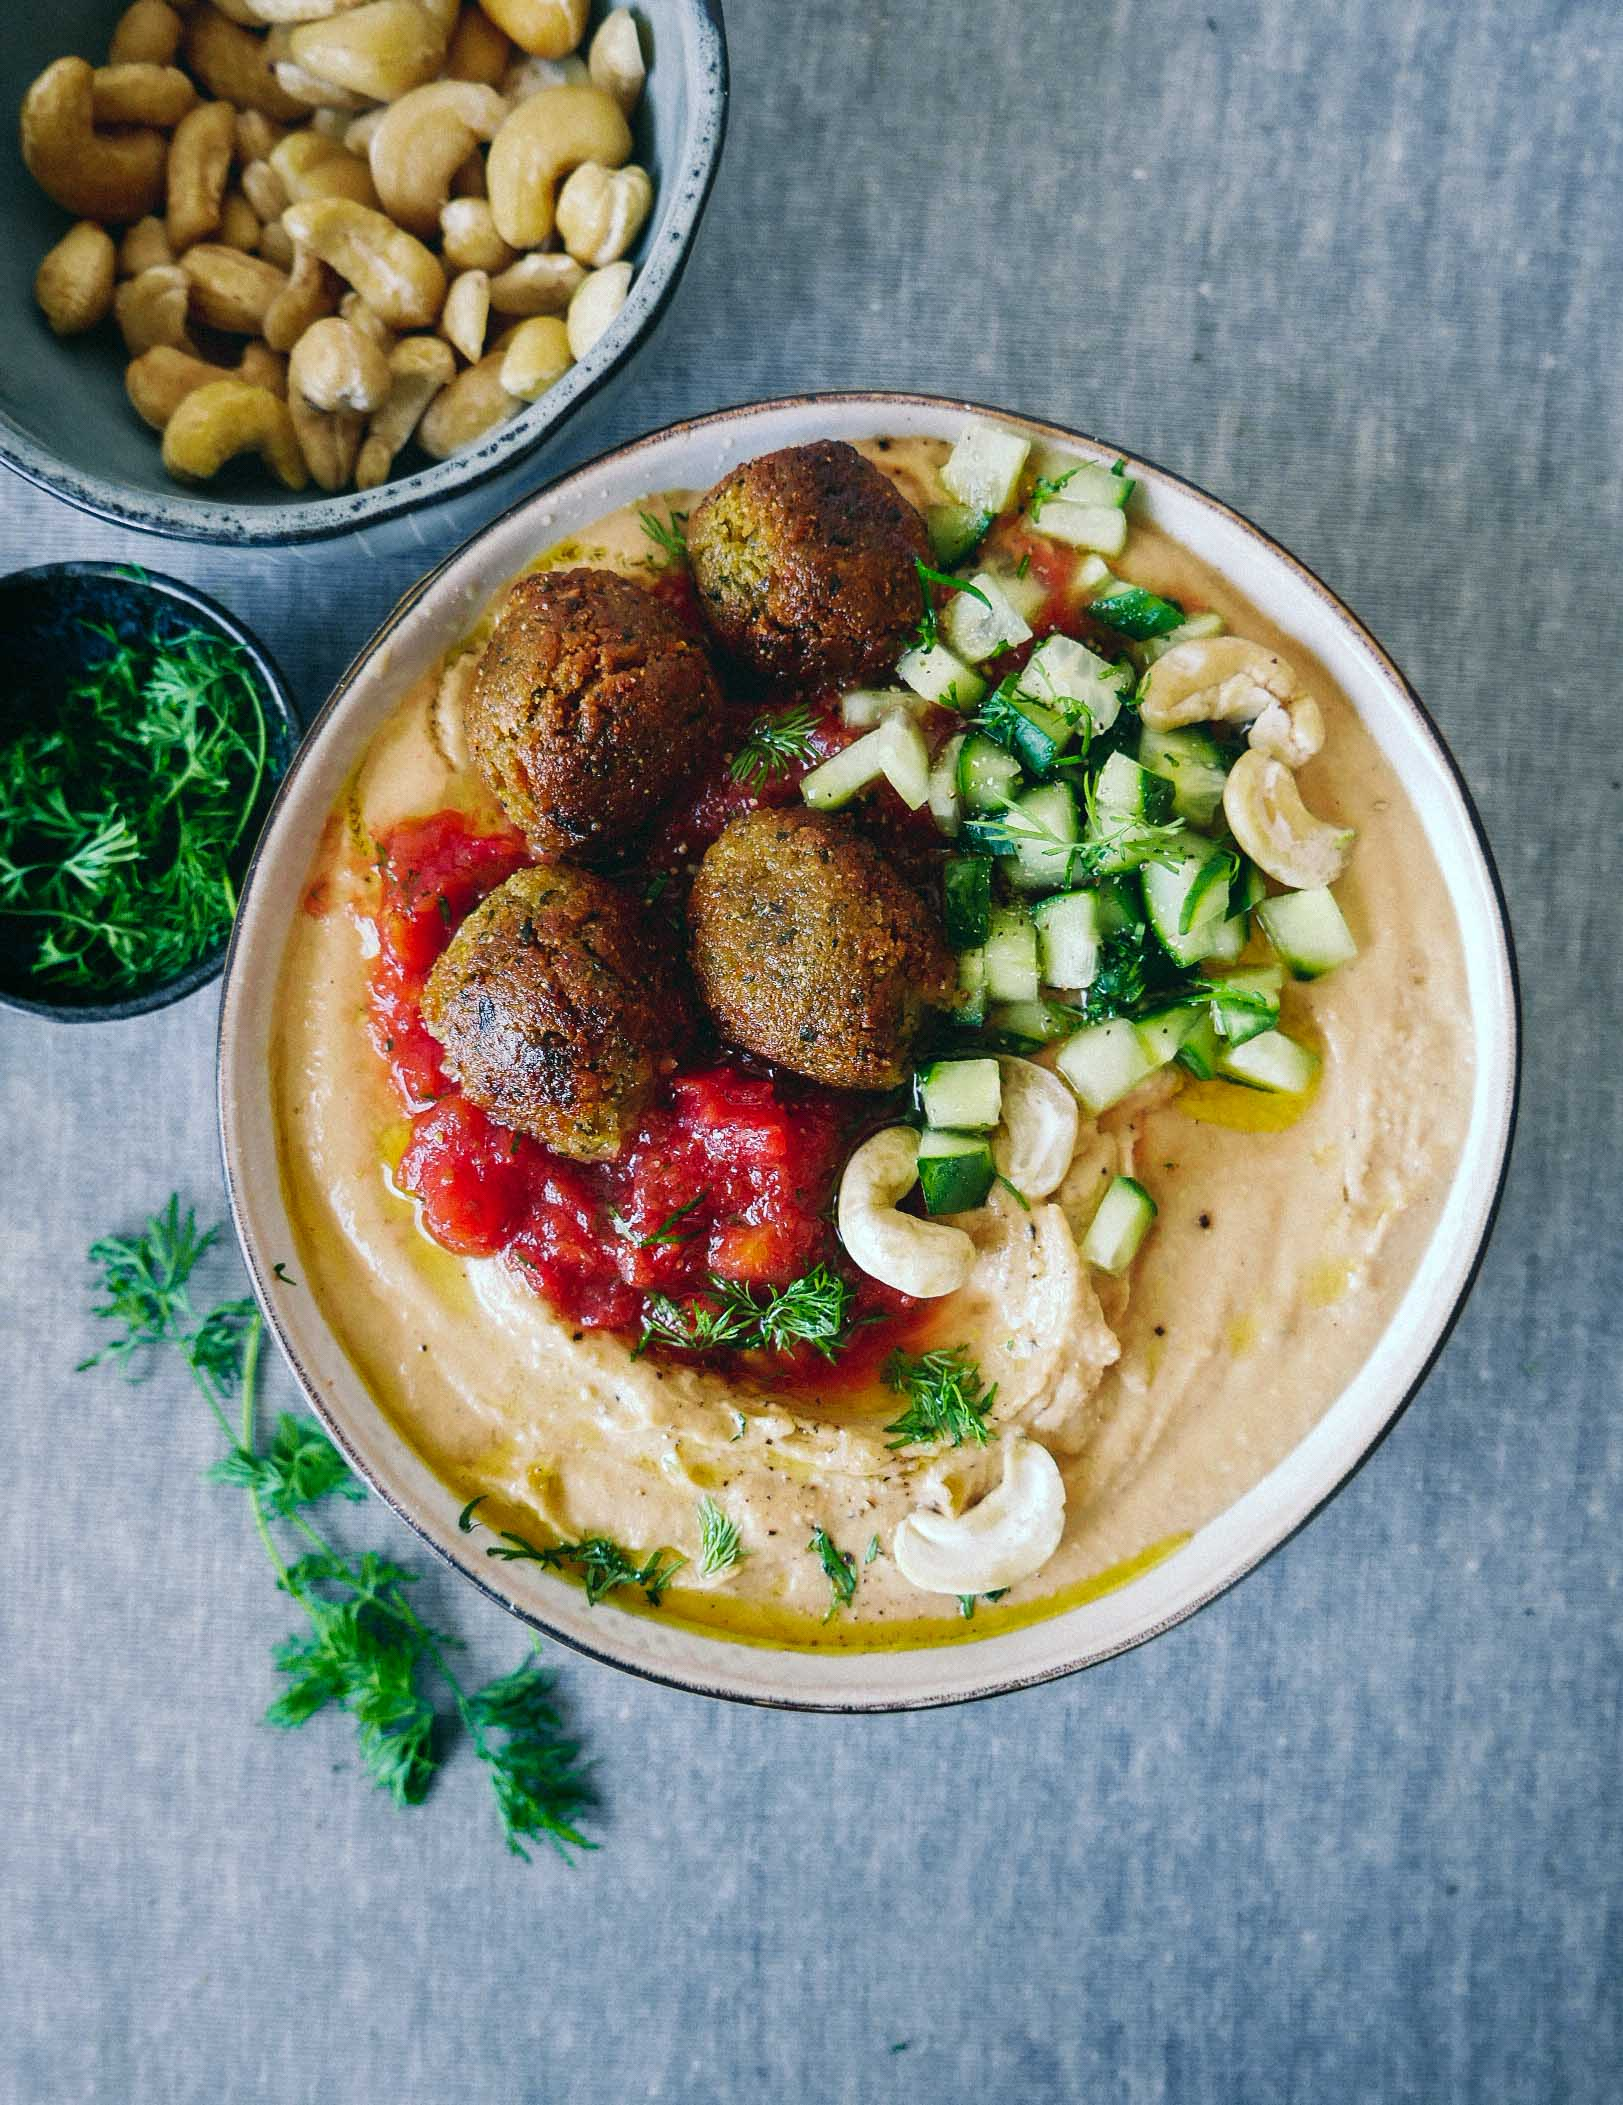 cashew hummus with falafels